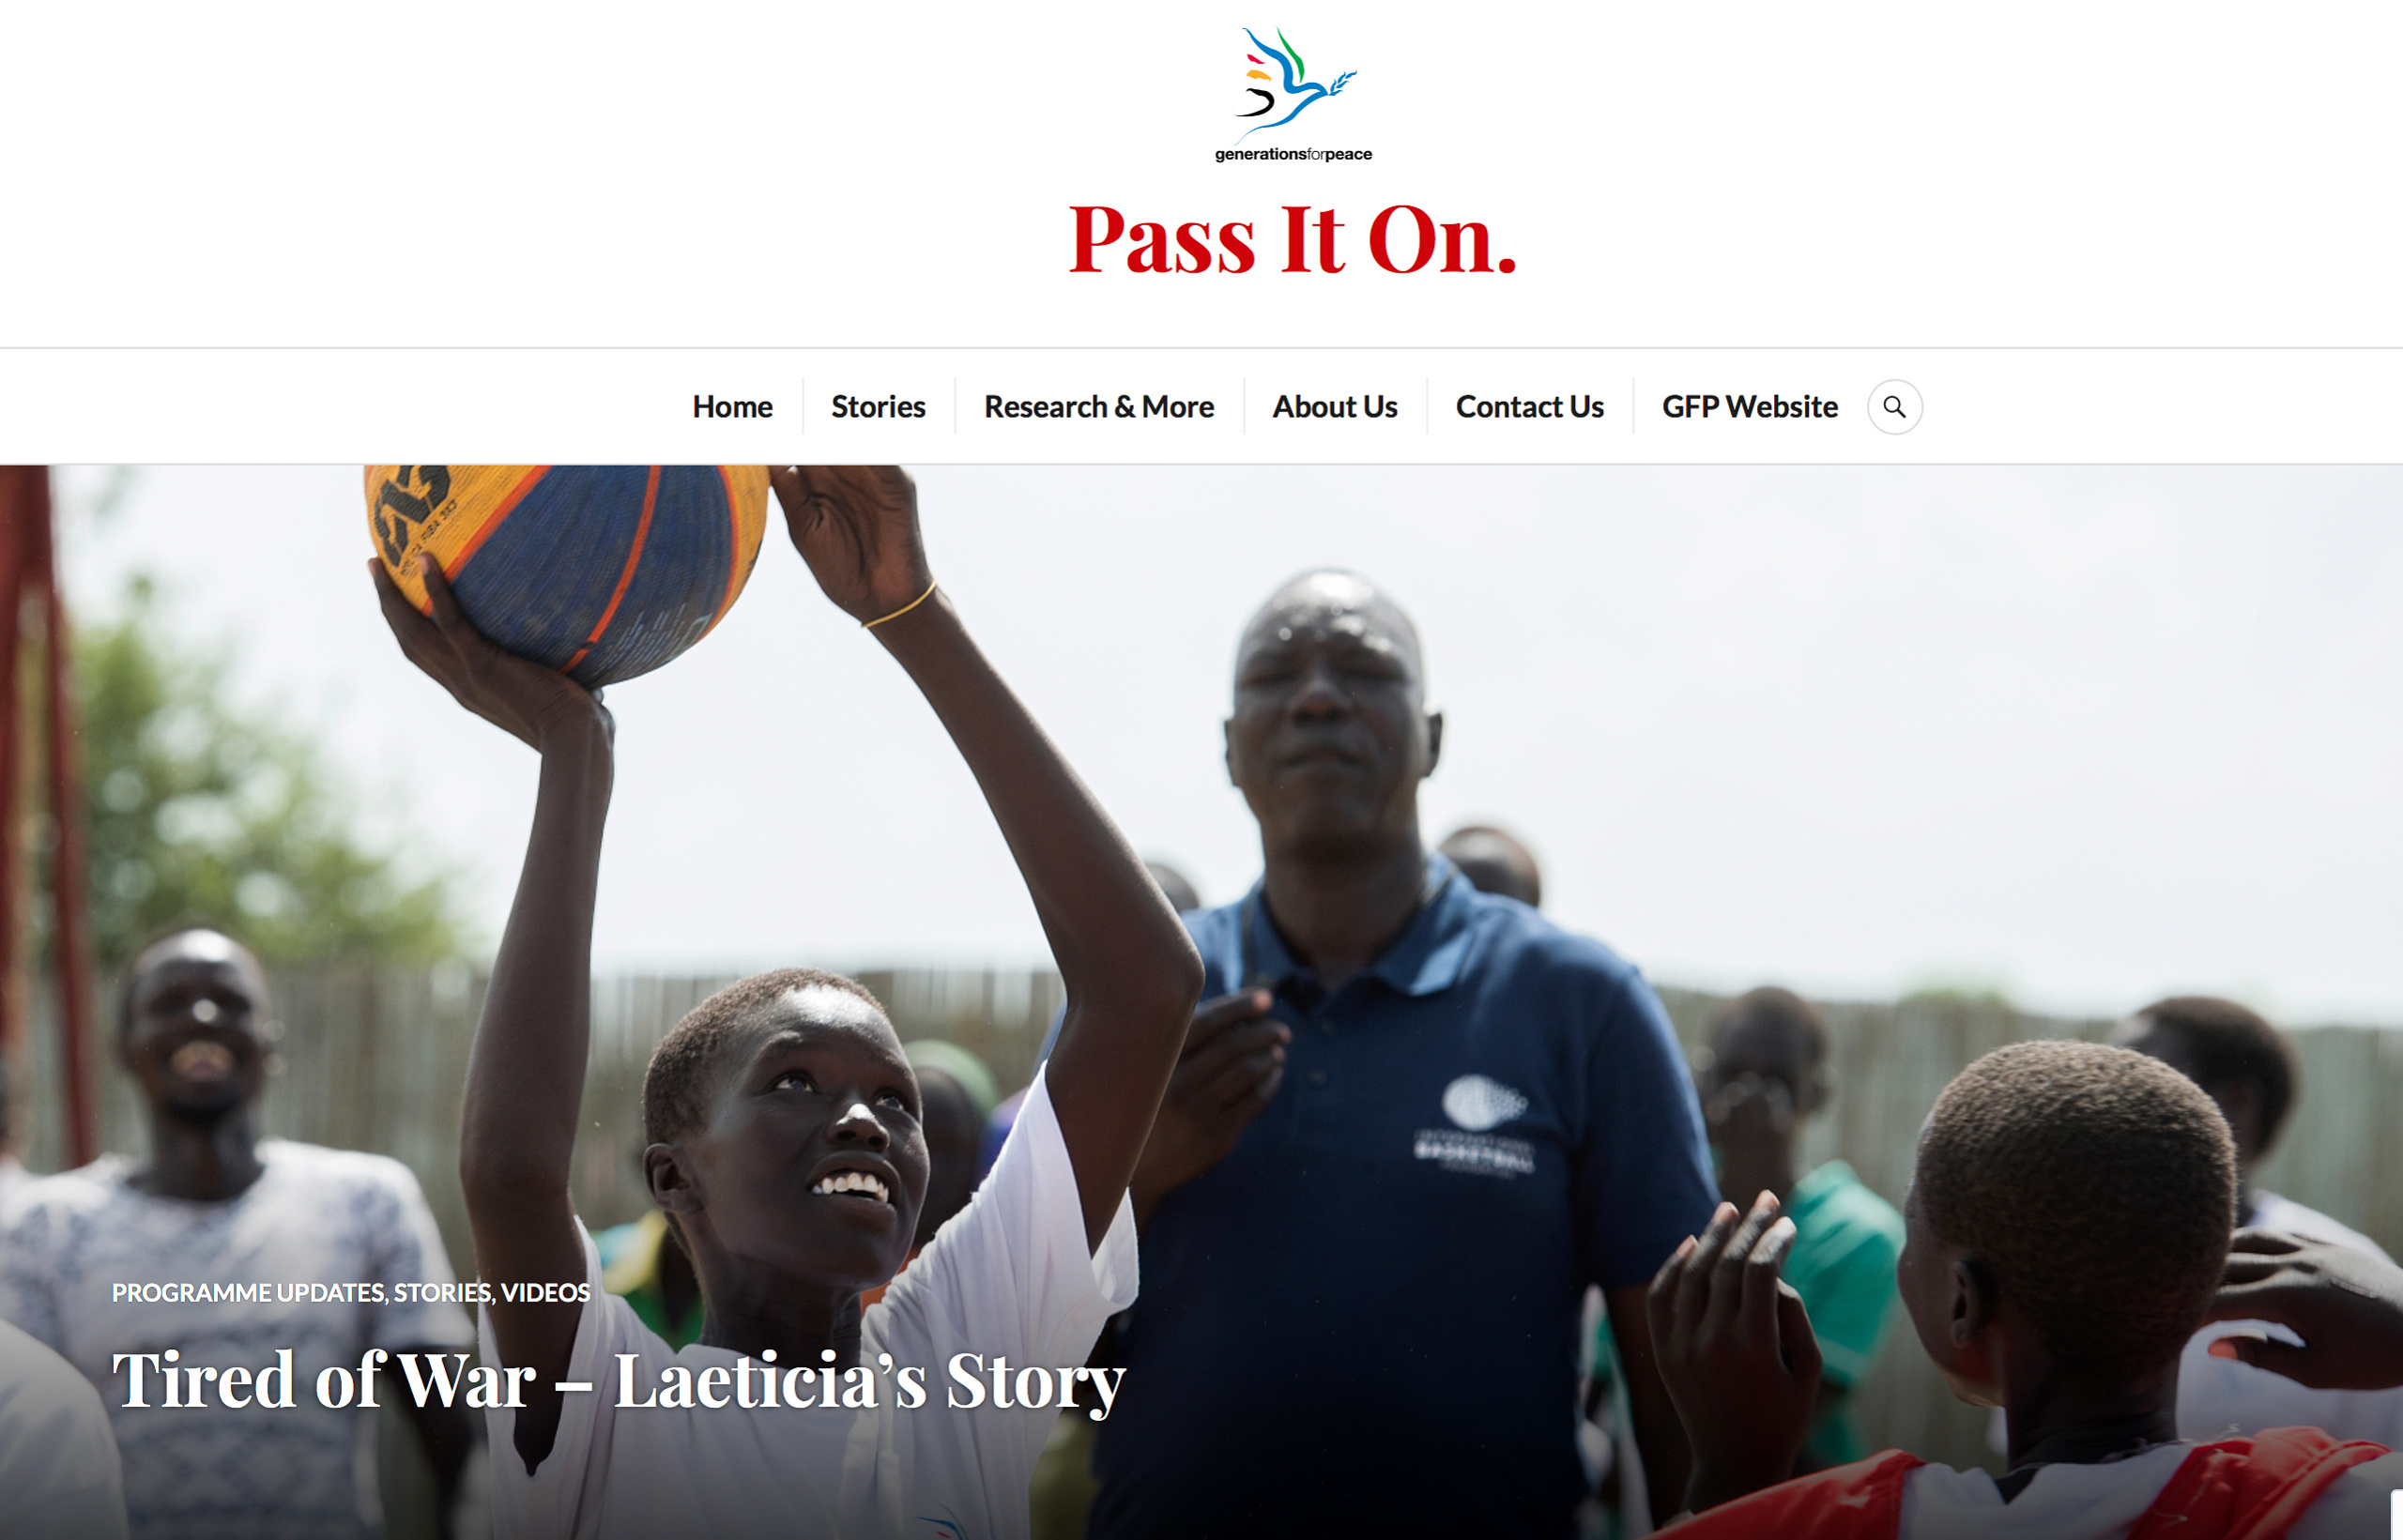 tearsheet-2019-08-27_35.Generations for peace Tired of War 1